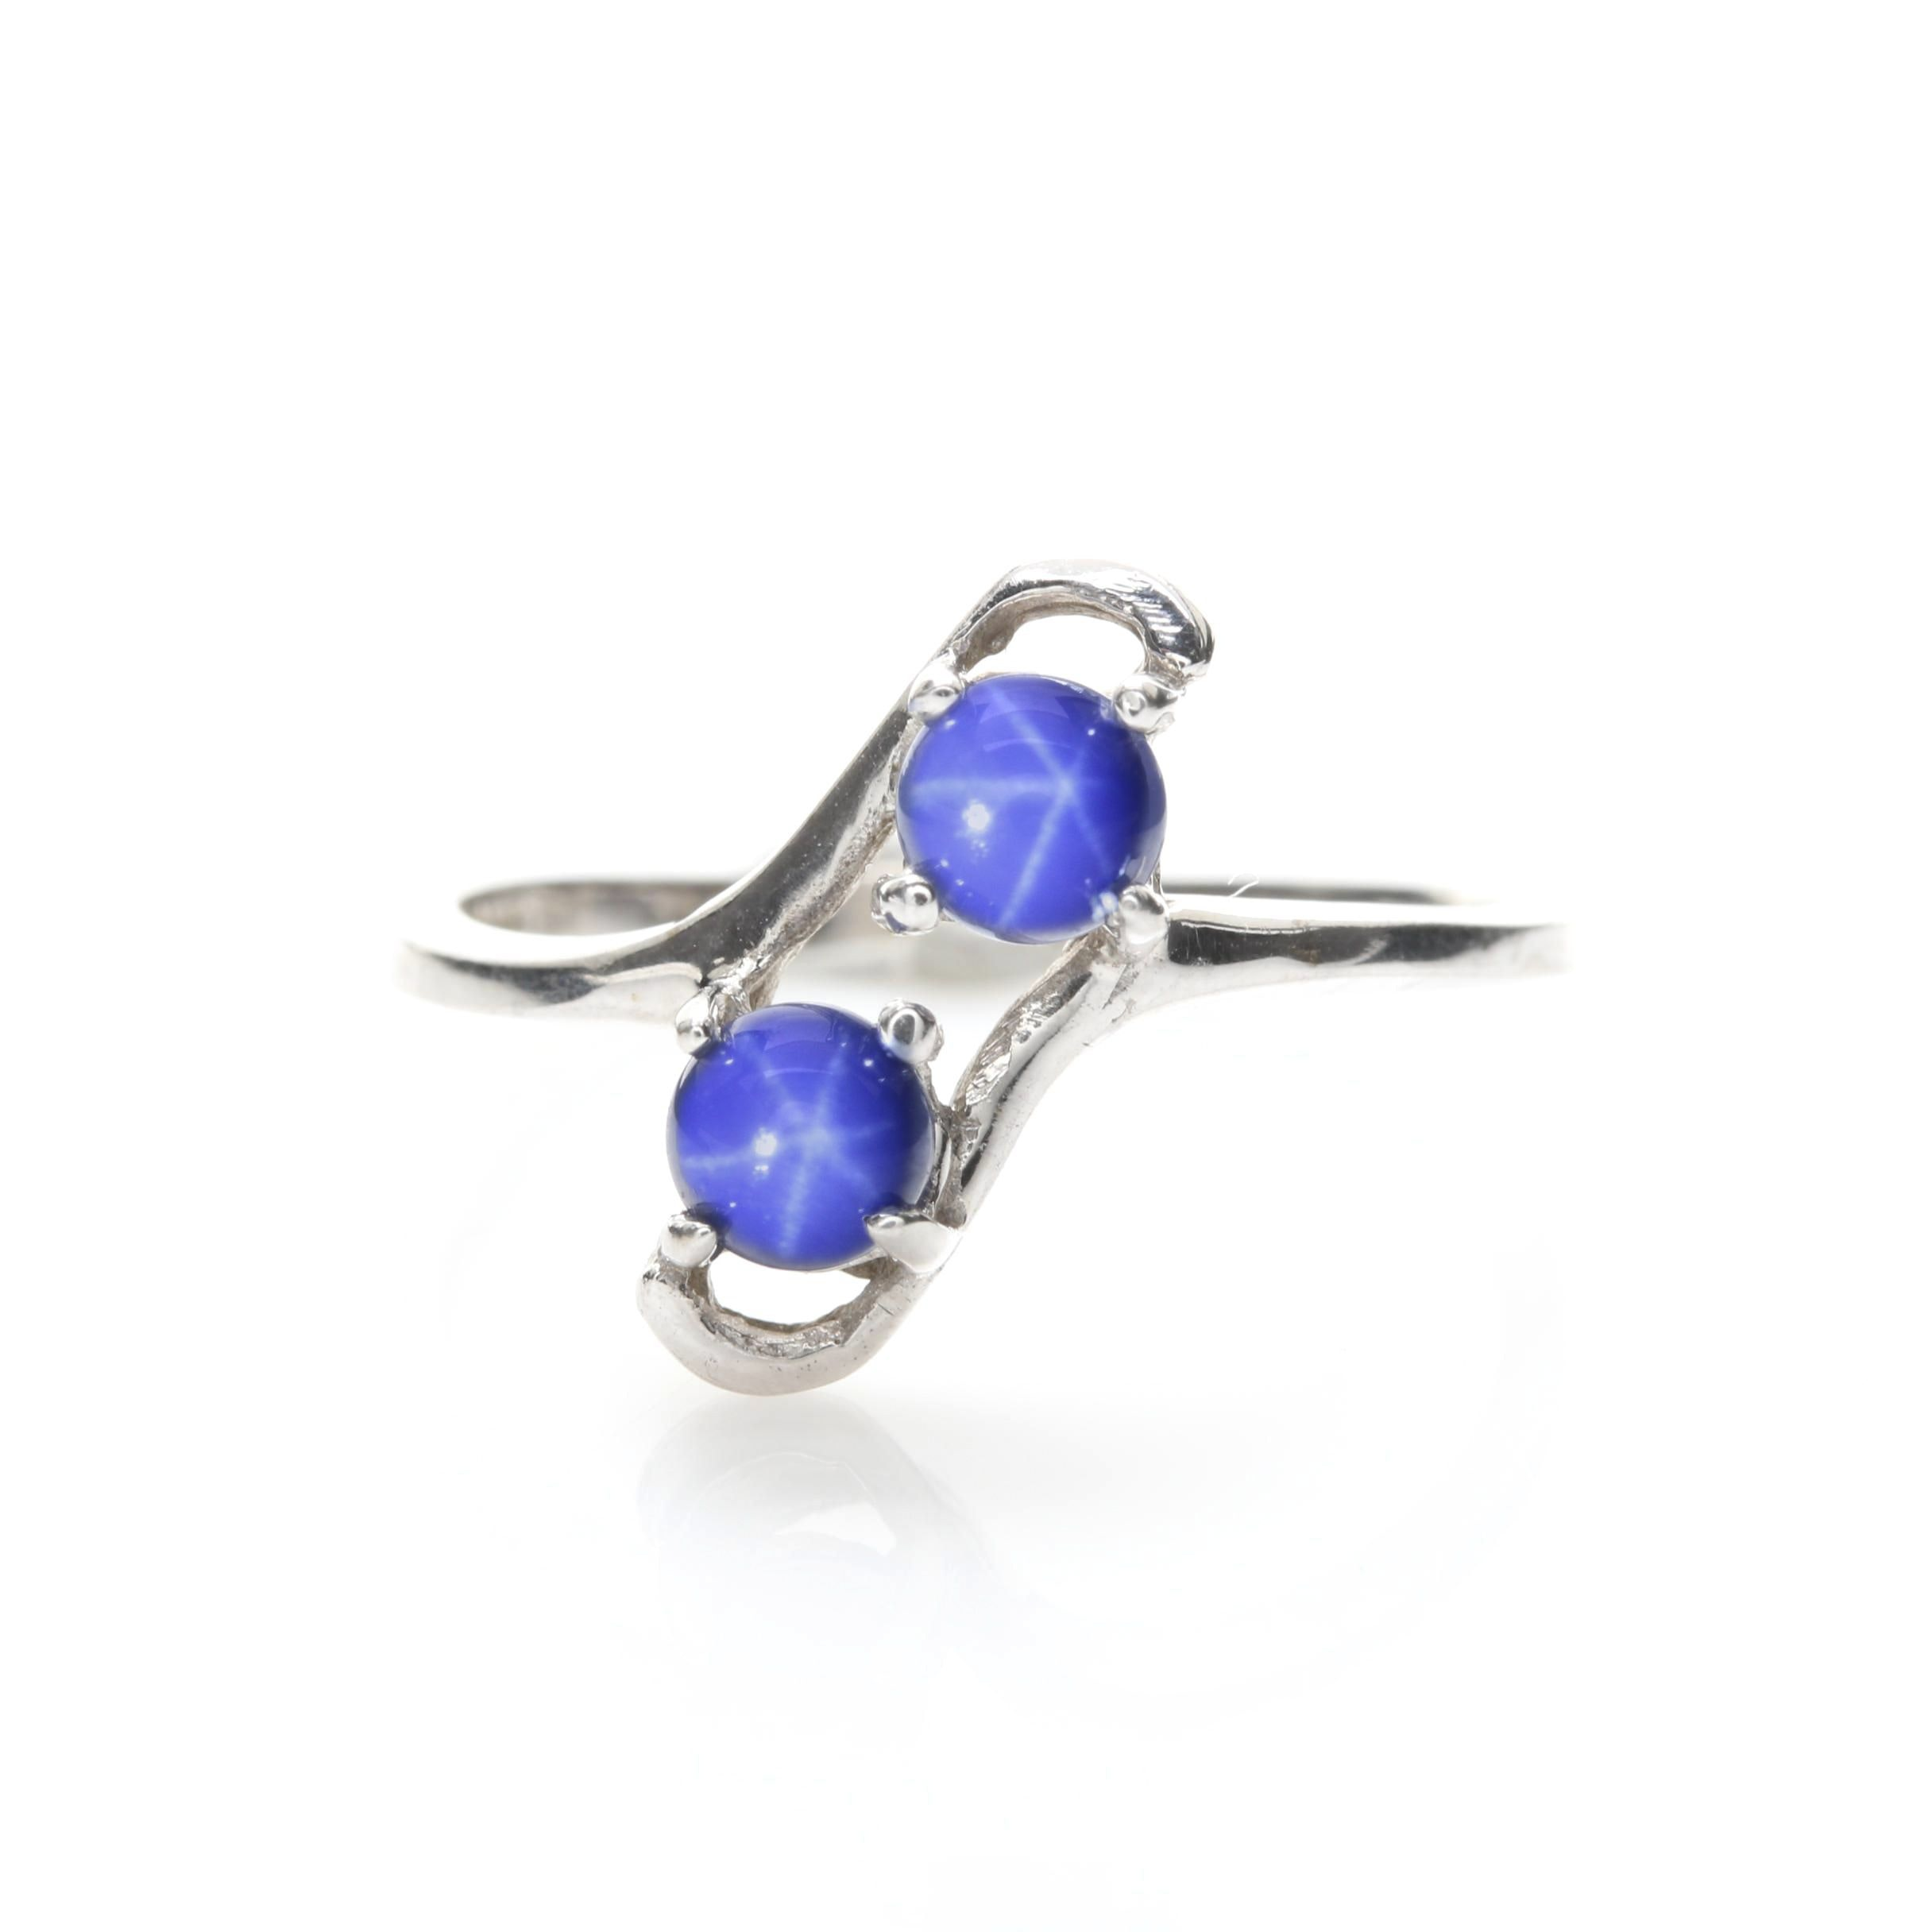 10K White Gold Synthetic Star Sapphire Bypass Ring